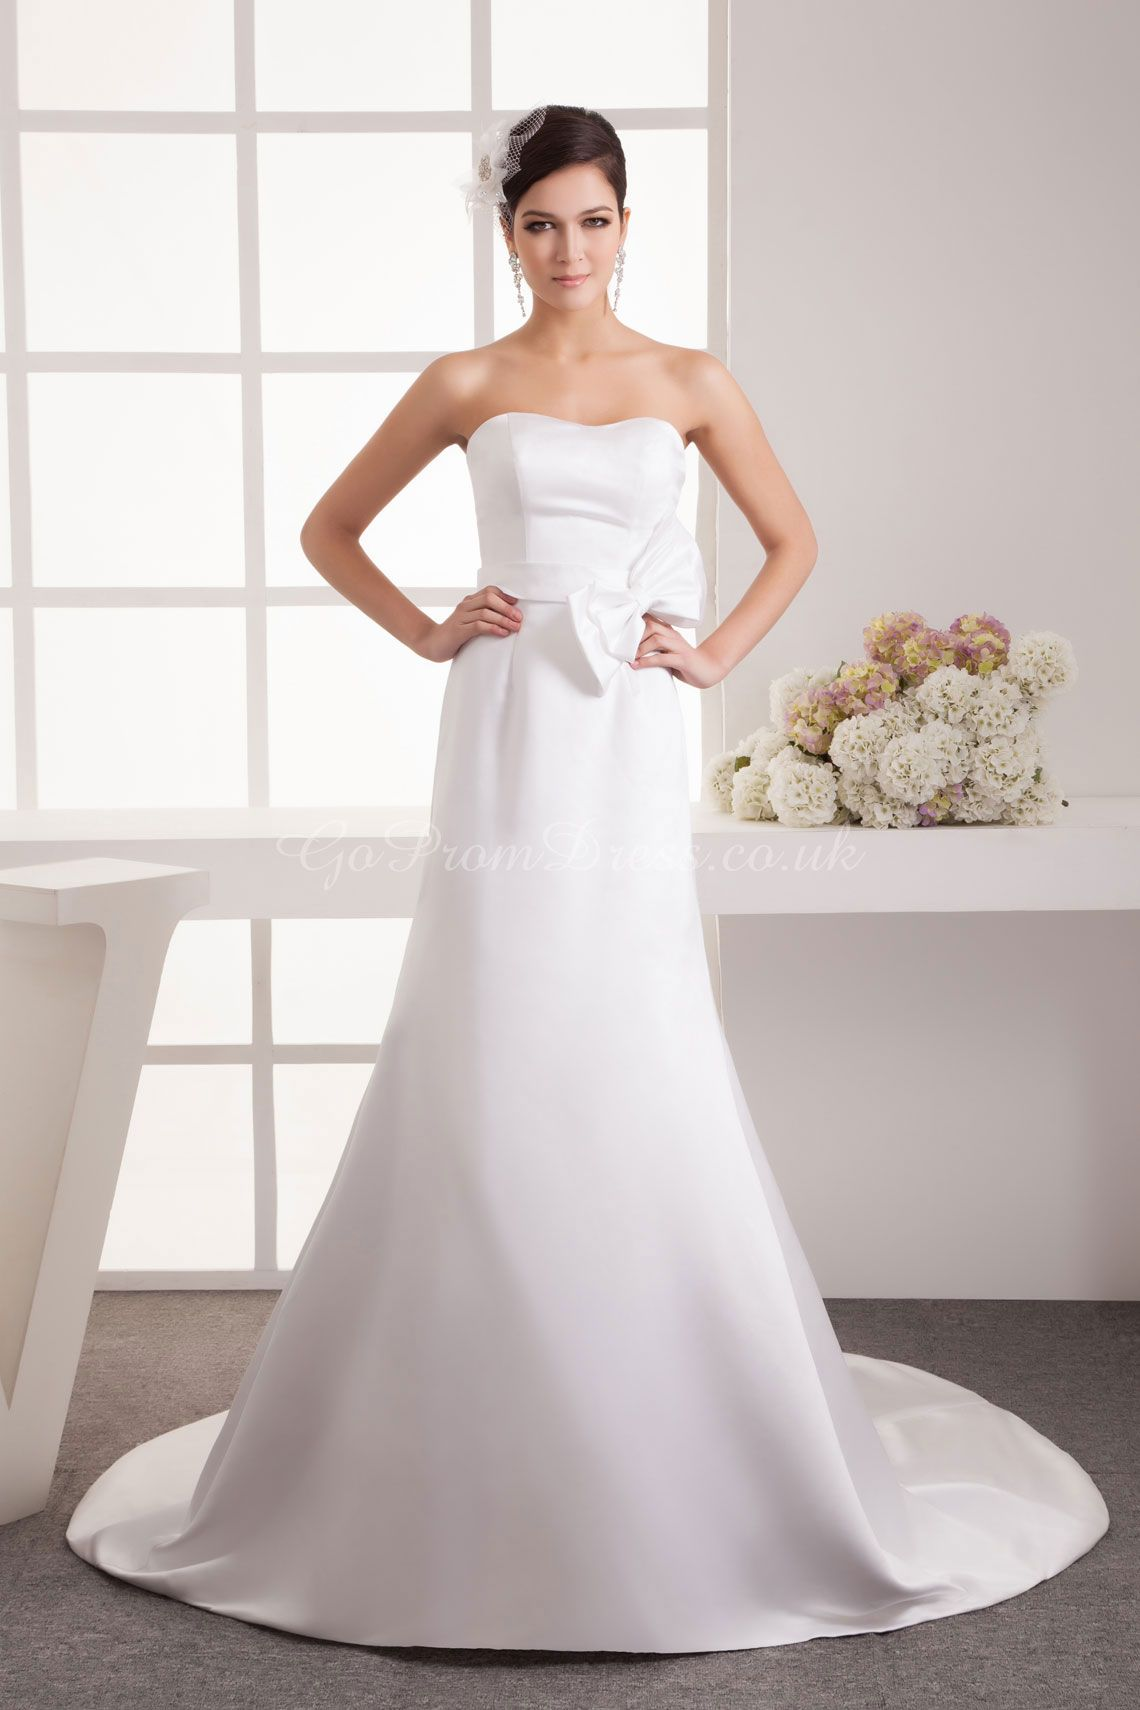 99 wedding dresses  Wedding Dresses UKCheap Wedding Dress  gopromdres  Page